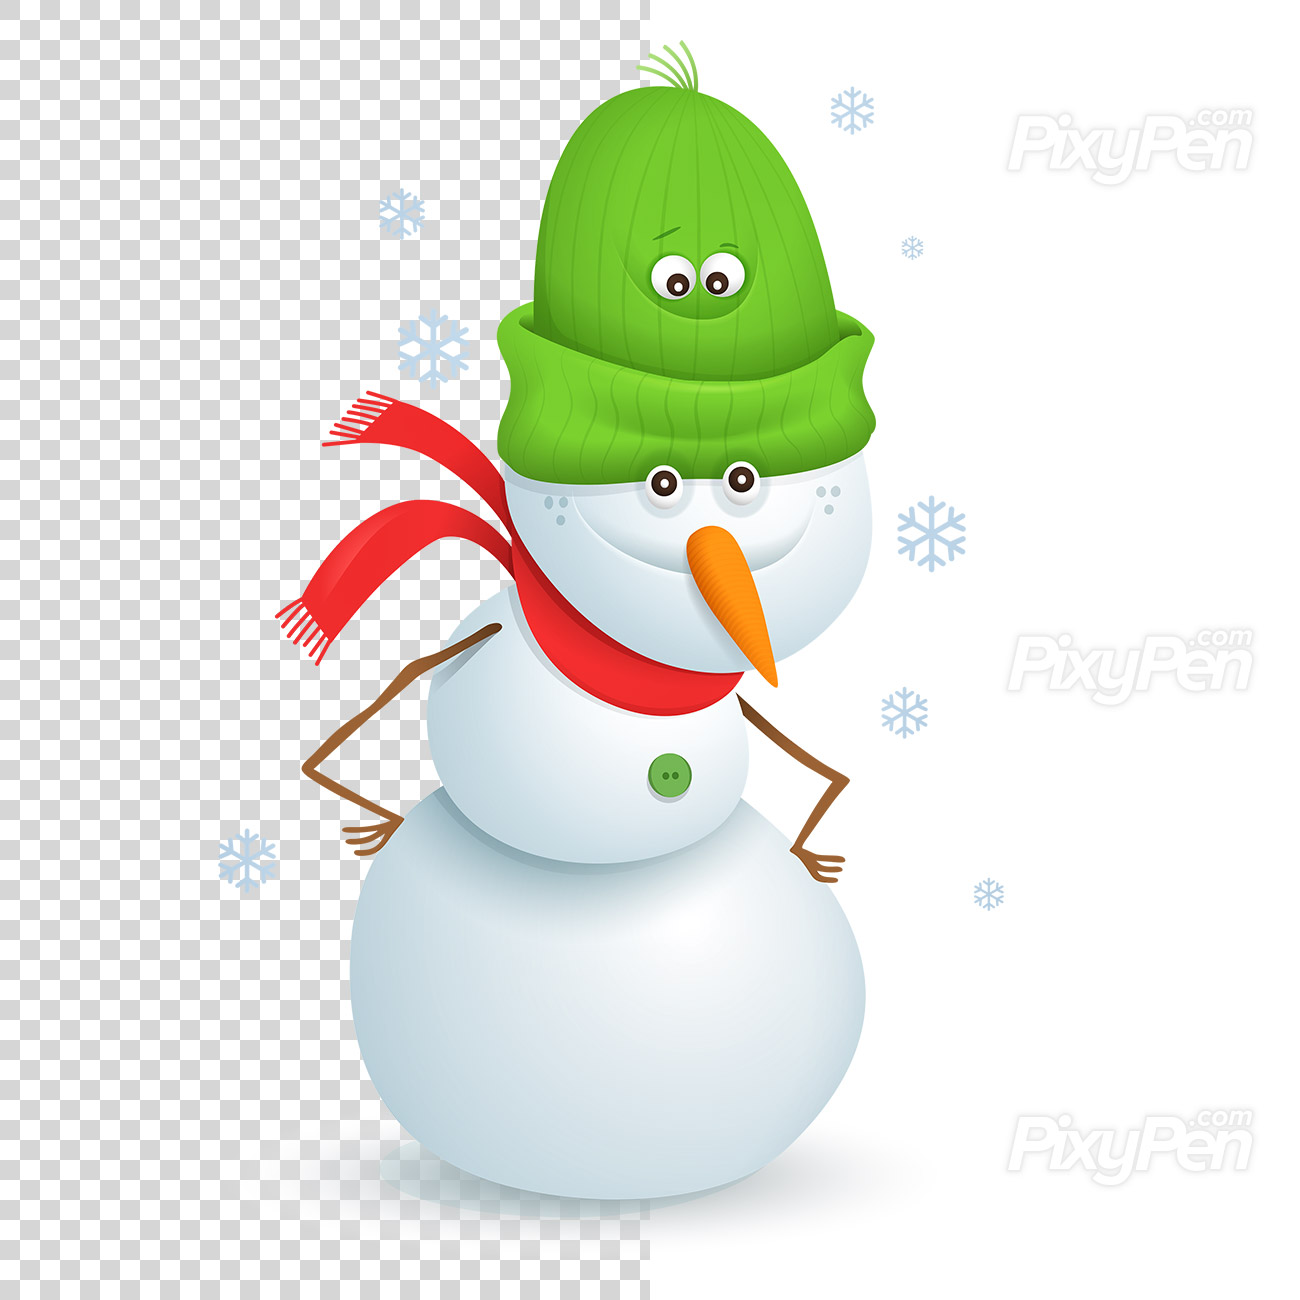 Snowman clipart on transparent background.